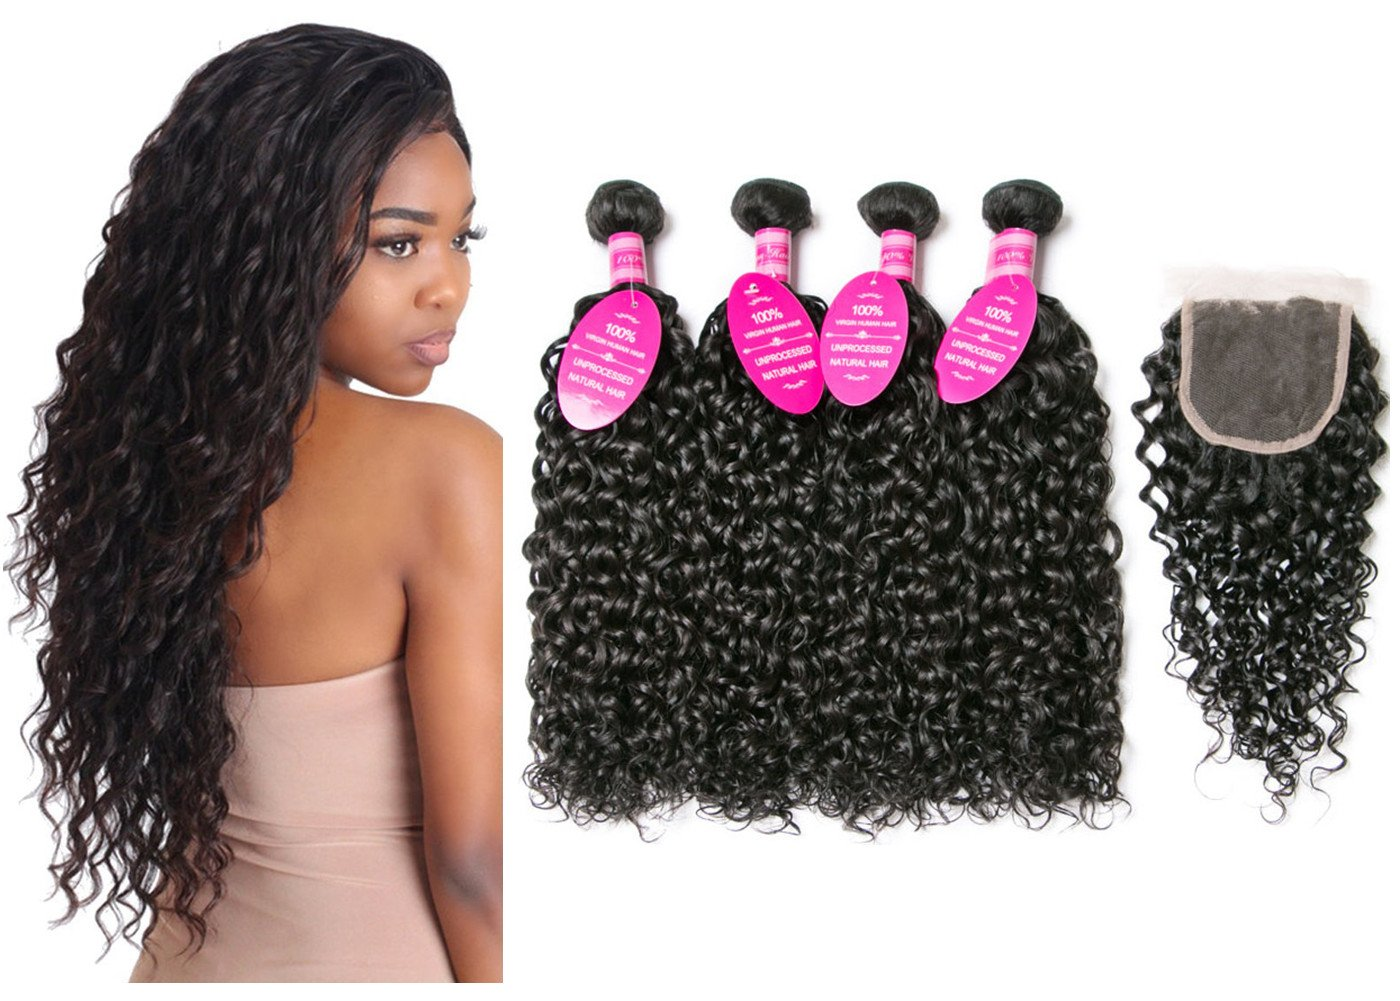 Brazilian Virgin Hair 4 Bundles with Closure Water Wave Hair Bundles with 4x4 Free Part Closure Unprocessed Virgin Human Hair (20 22 24 26 with 18, Natural Color)